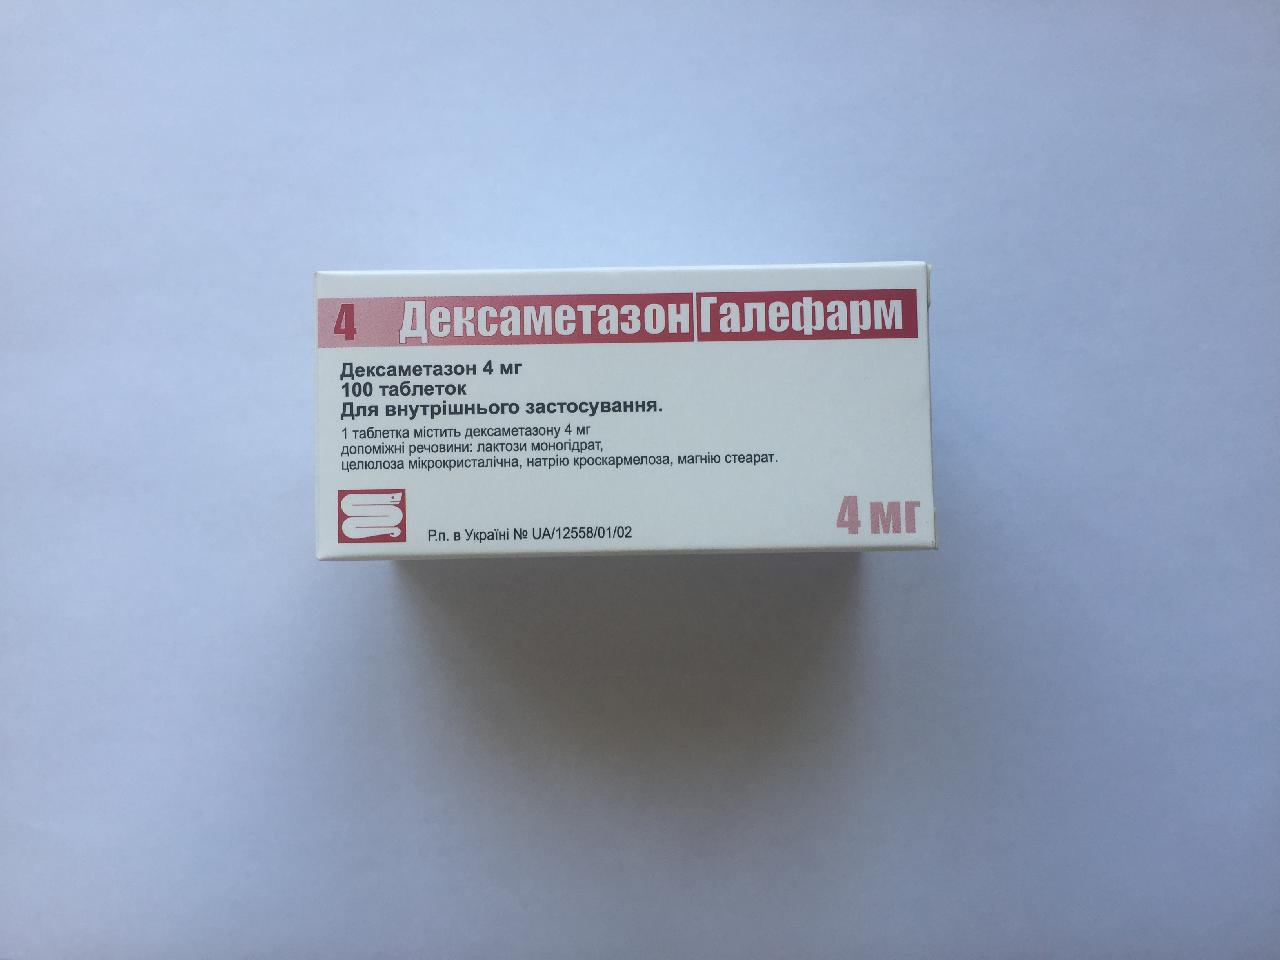 Дексаметазон-Галефарм  4мг, Швейцария, Galepharm